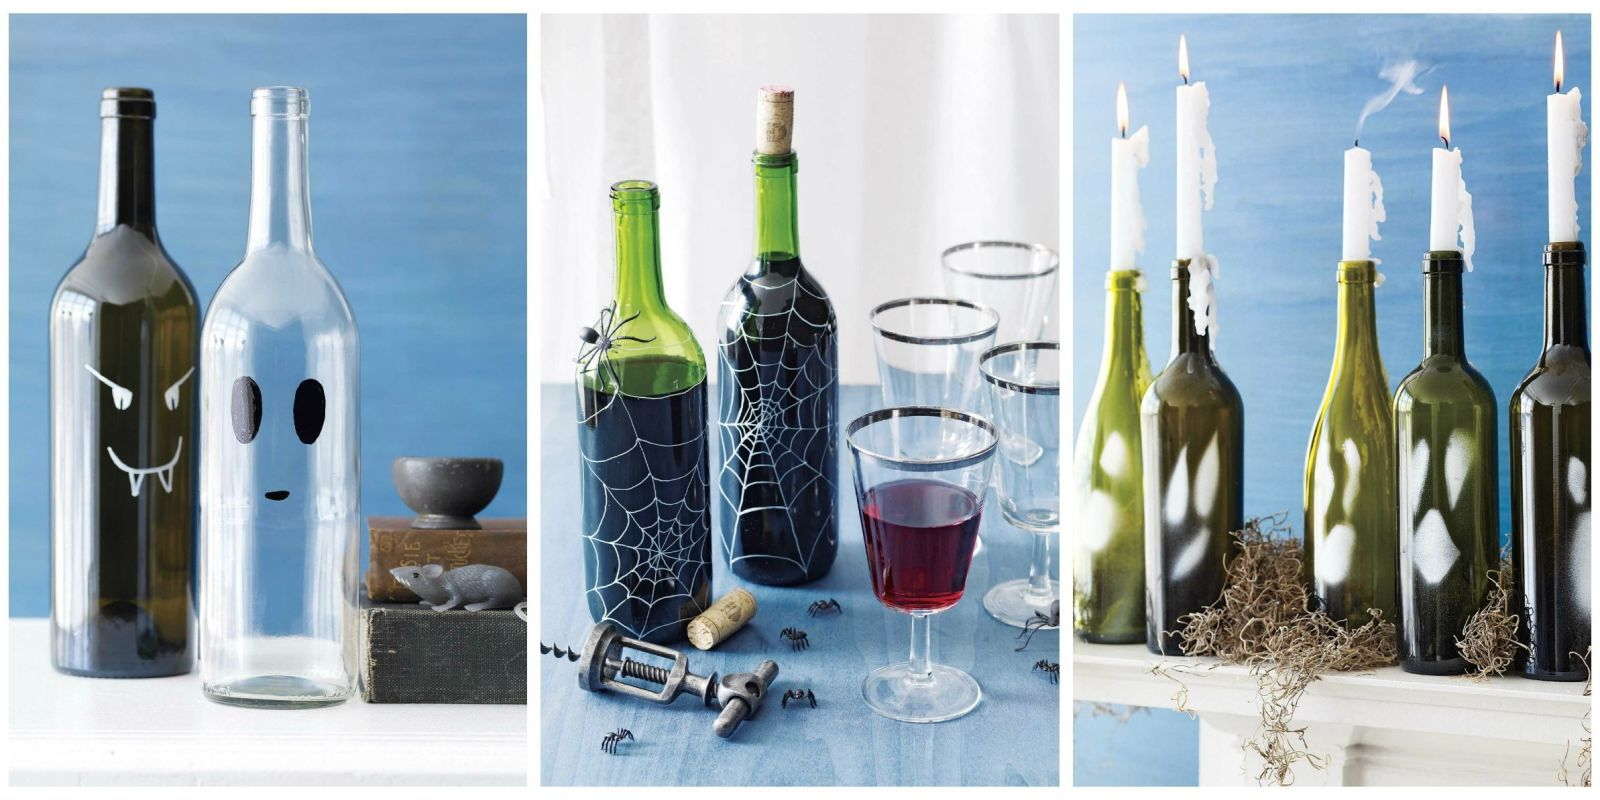 5 Spooktacular Wine Bottle Crafts Scary halloween - Do It Yourself Halloween Decorations